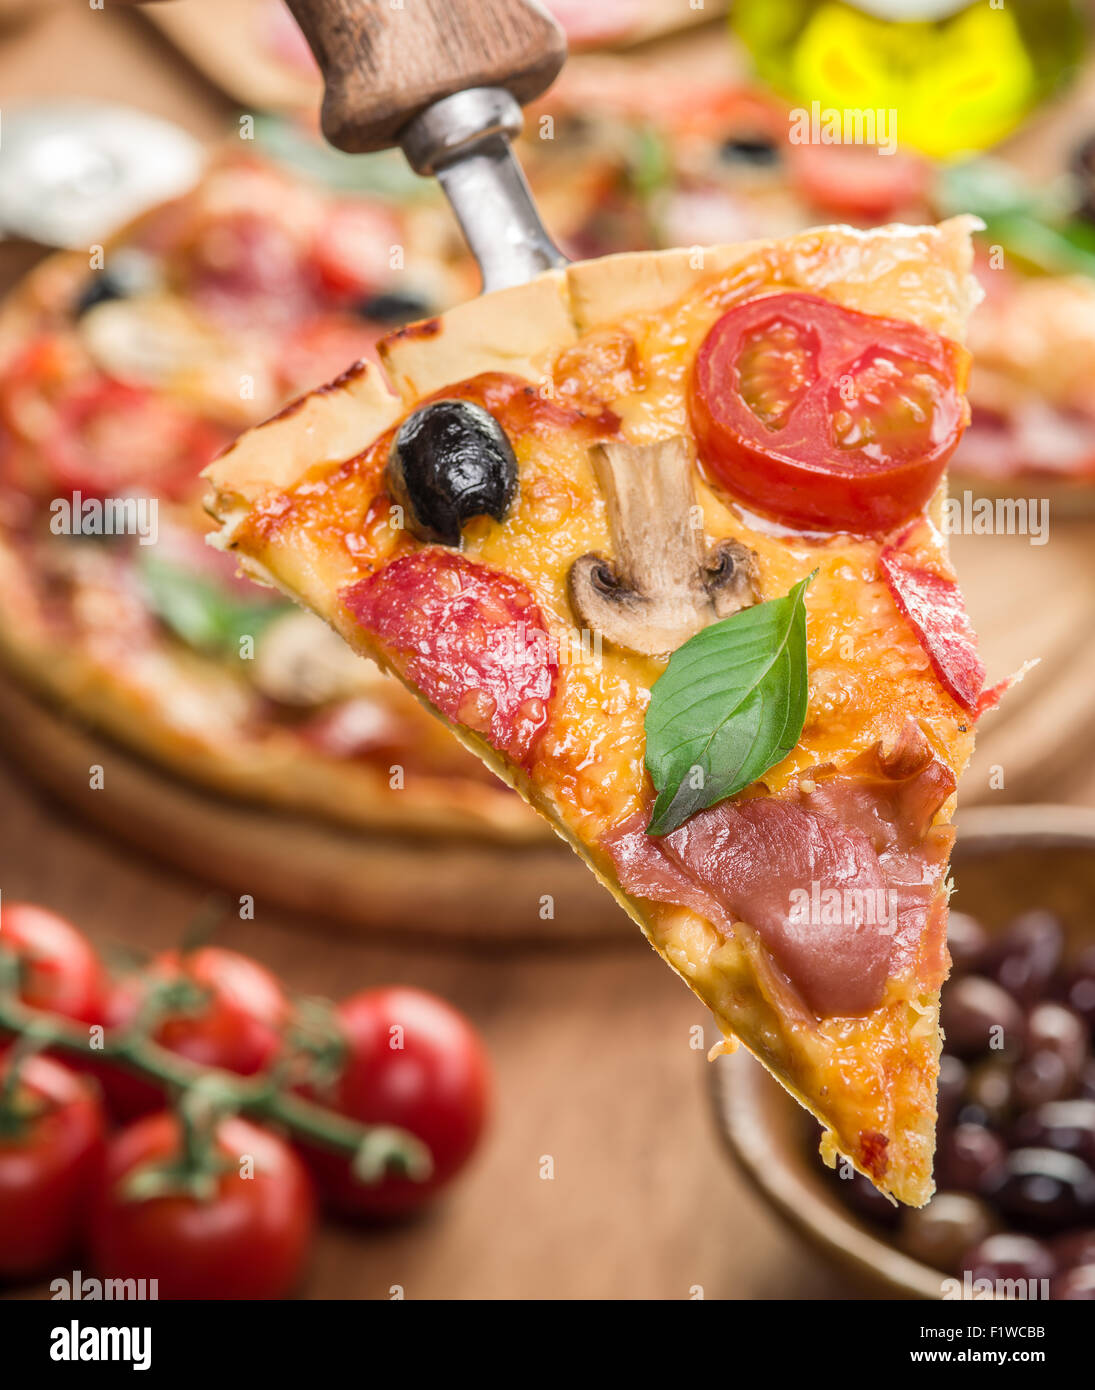 Piece of pizza with mushrooms, ham and tomatoes. Top view. - Stock Image